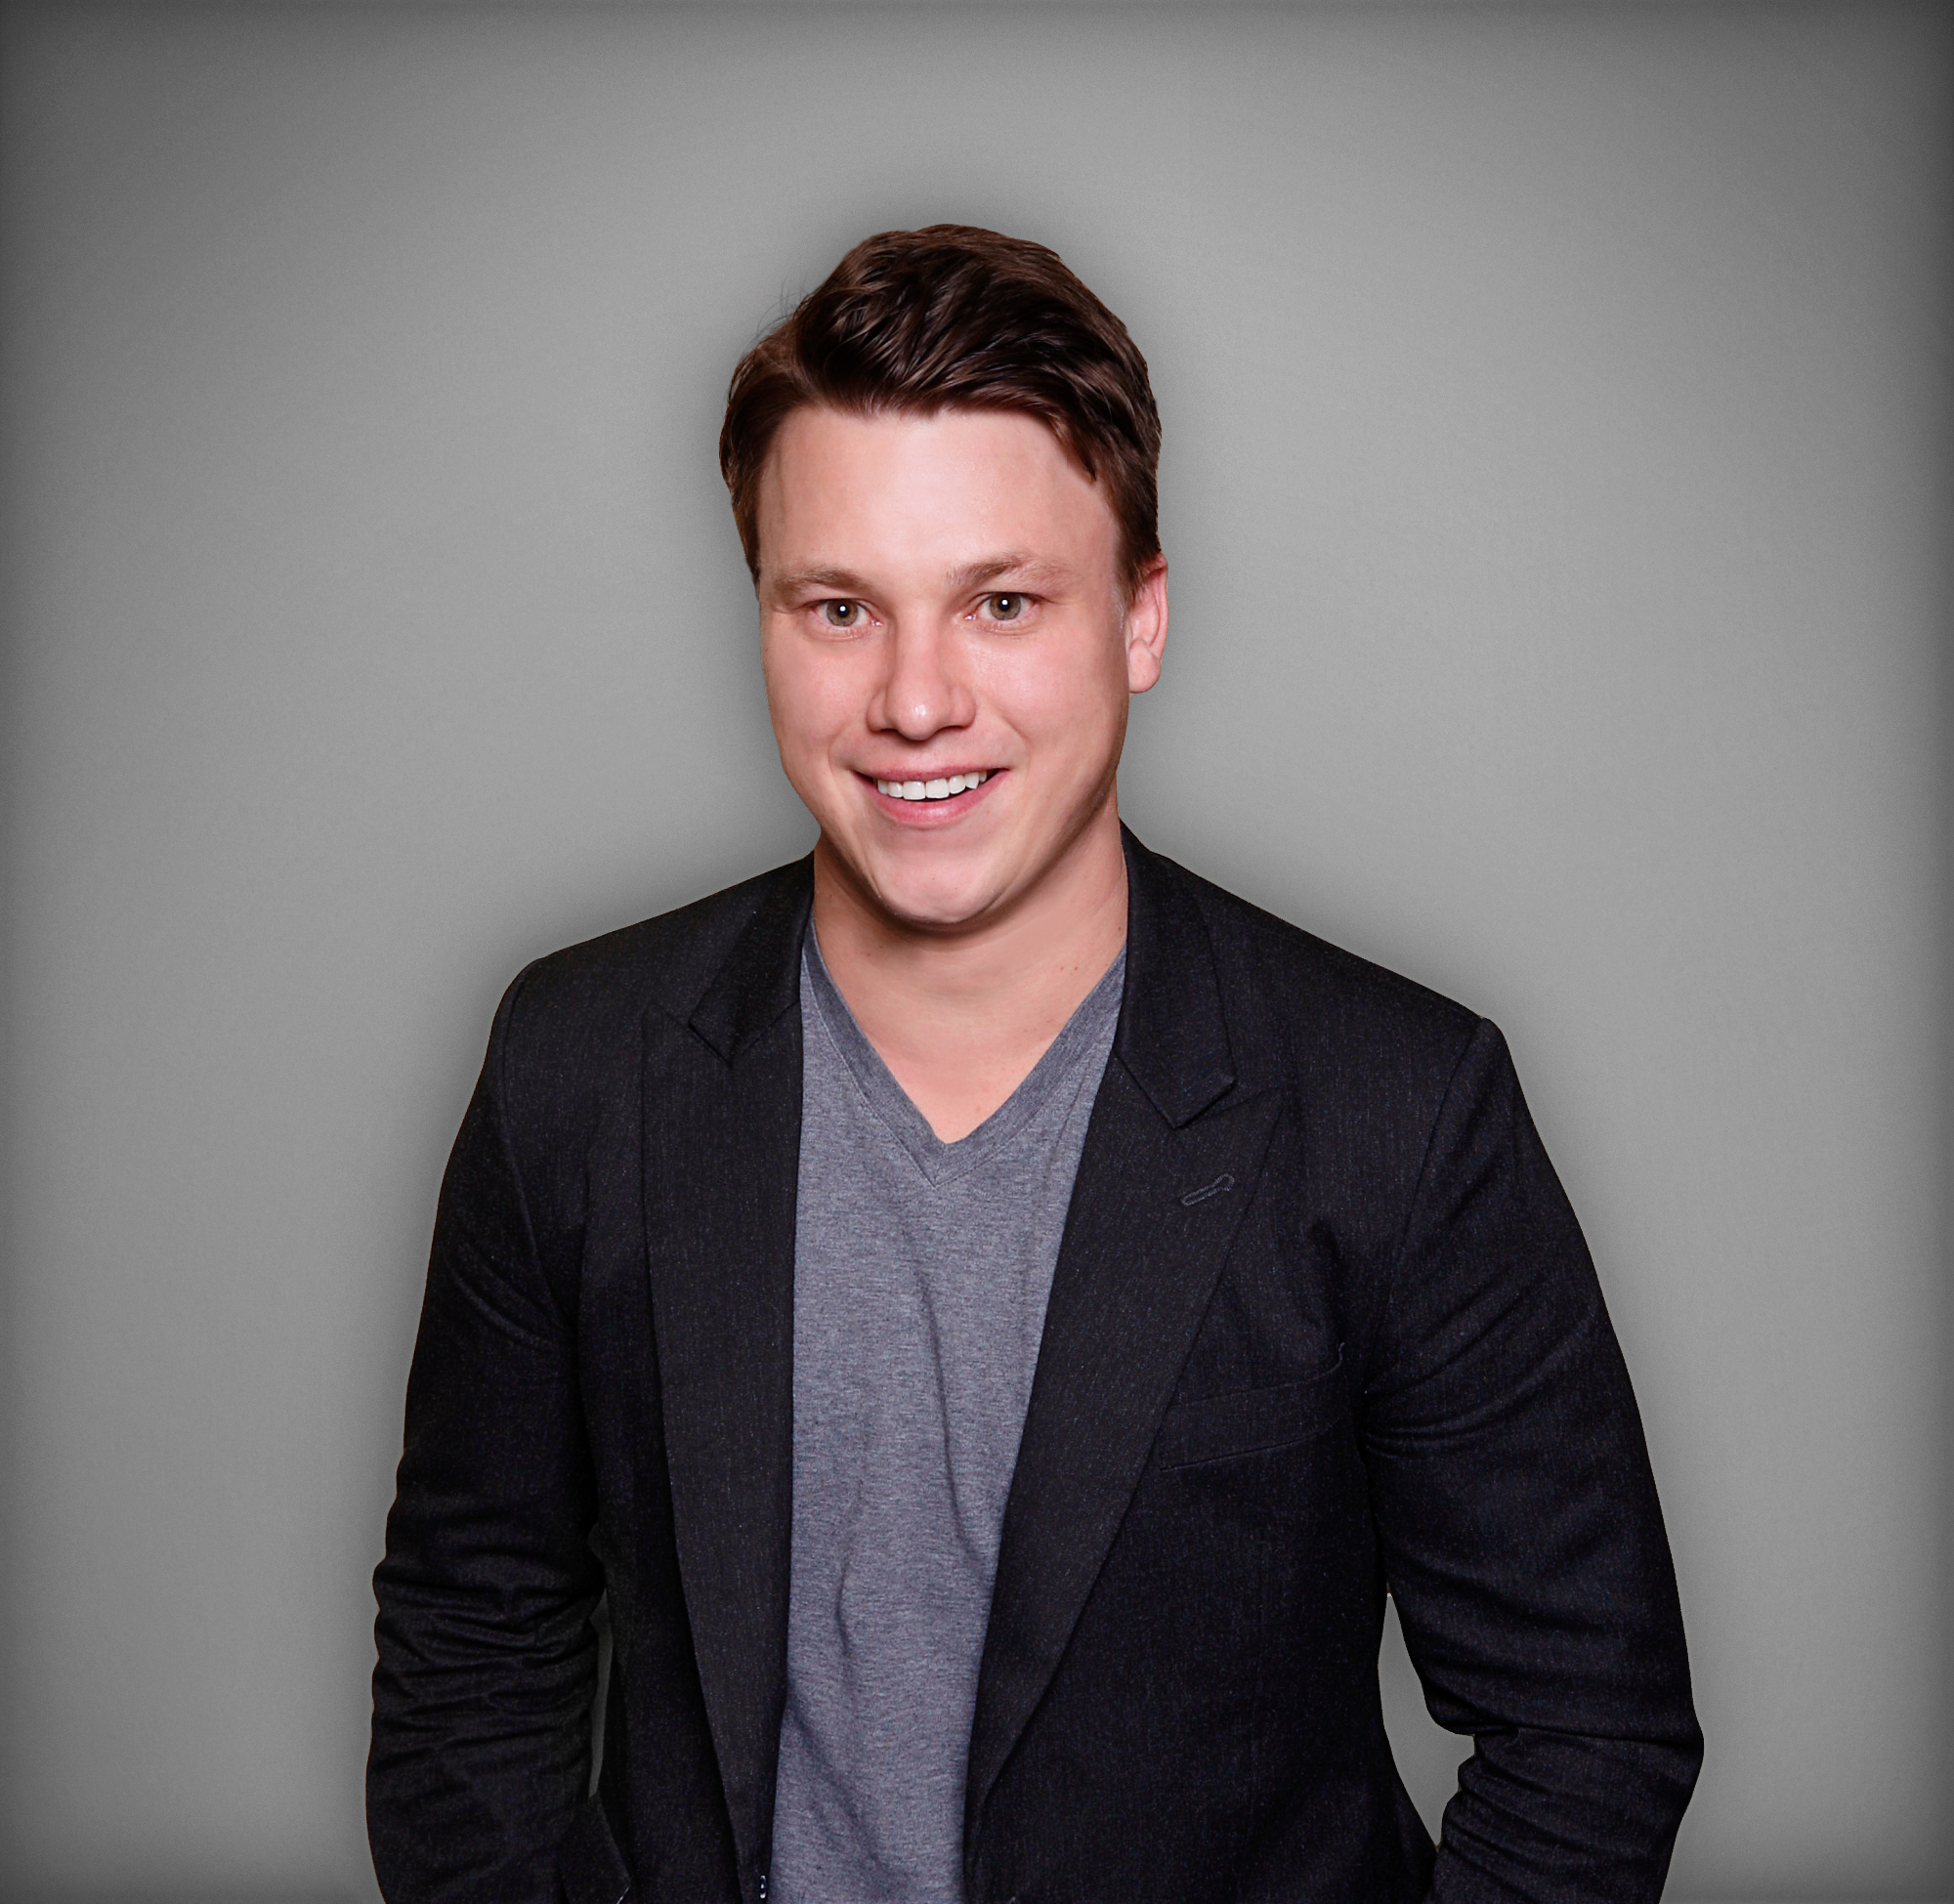 Taylor Ablitt, Co-Founder & Chief Executive Officer of Diply  (Photo: Business Wire)